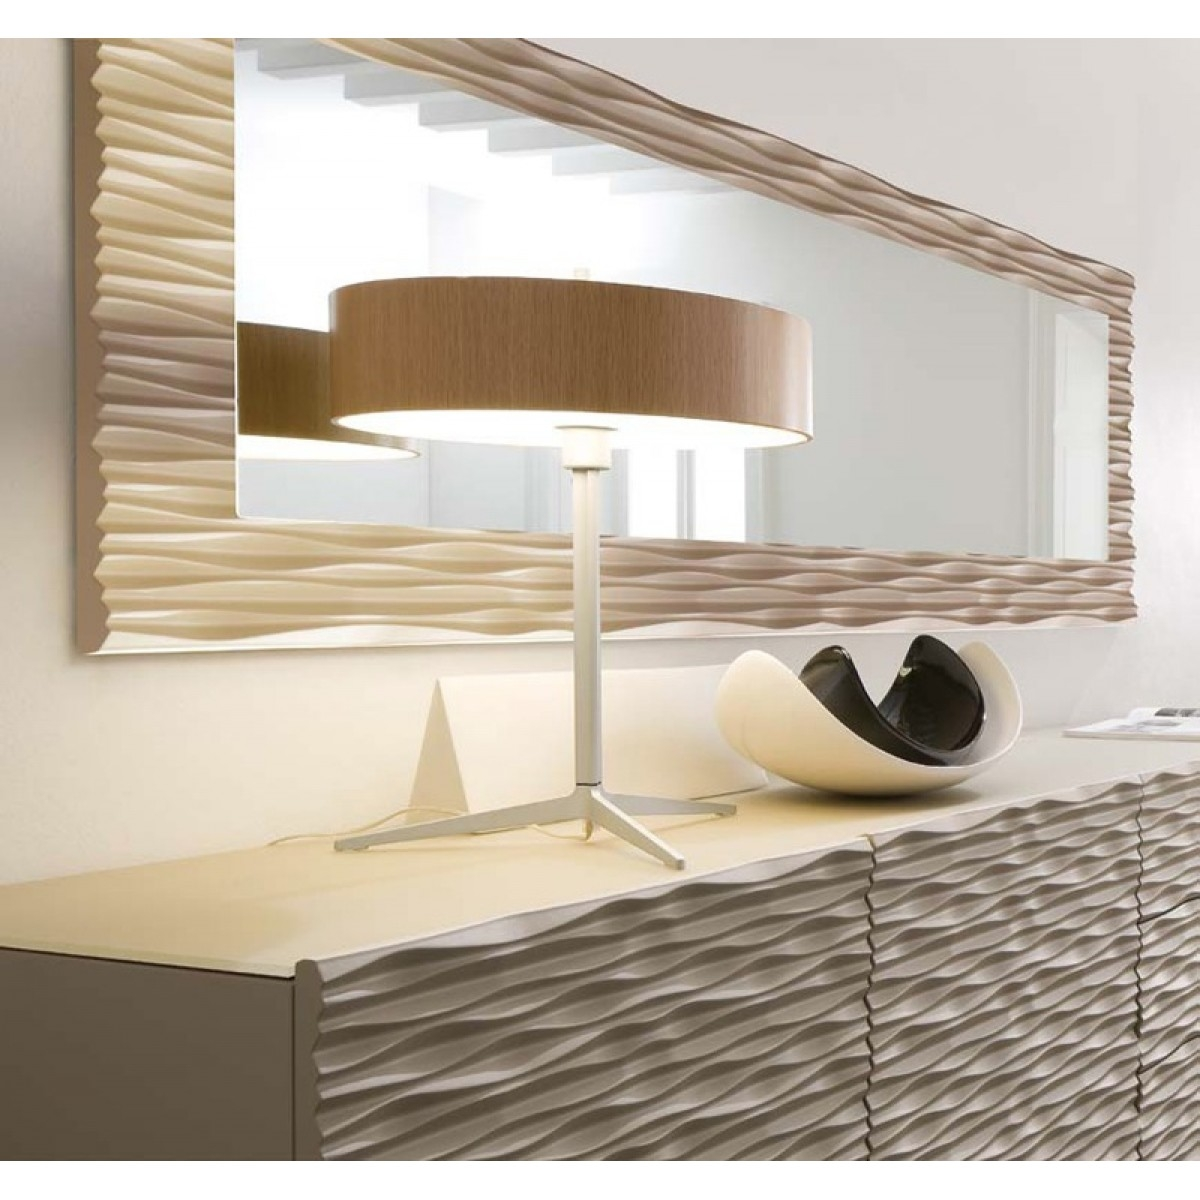 Download Large Designer Wall Mirrors Sandiegoduathlon With Regard To Large Contemporary Mirror (Image 4 of 15)